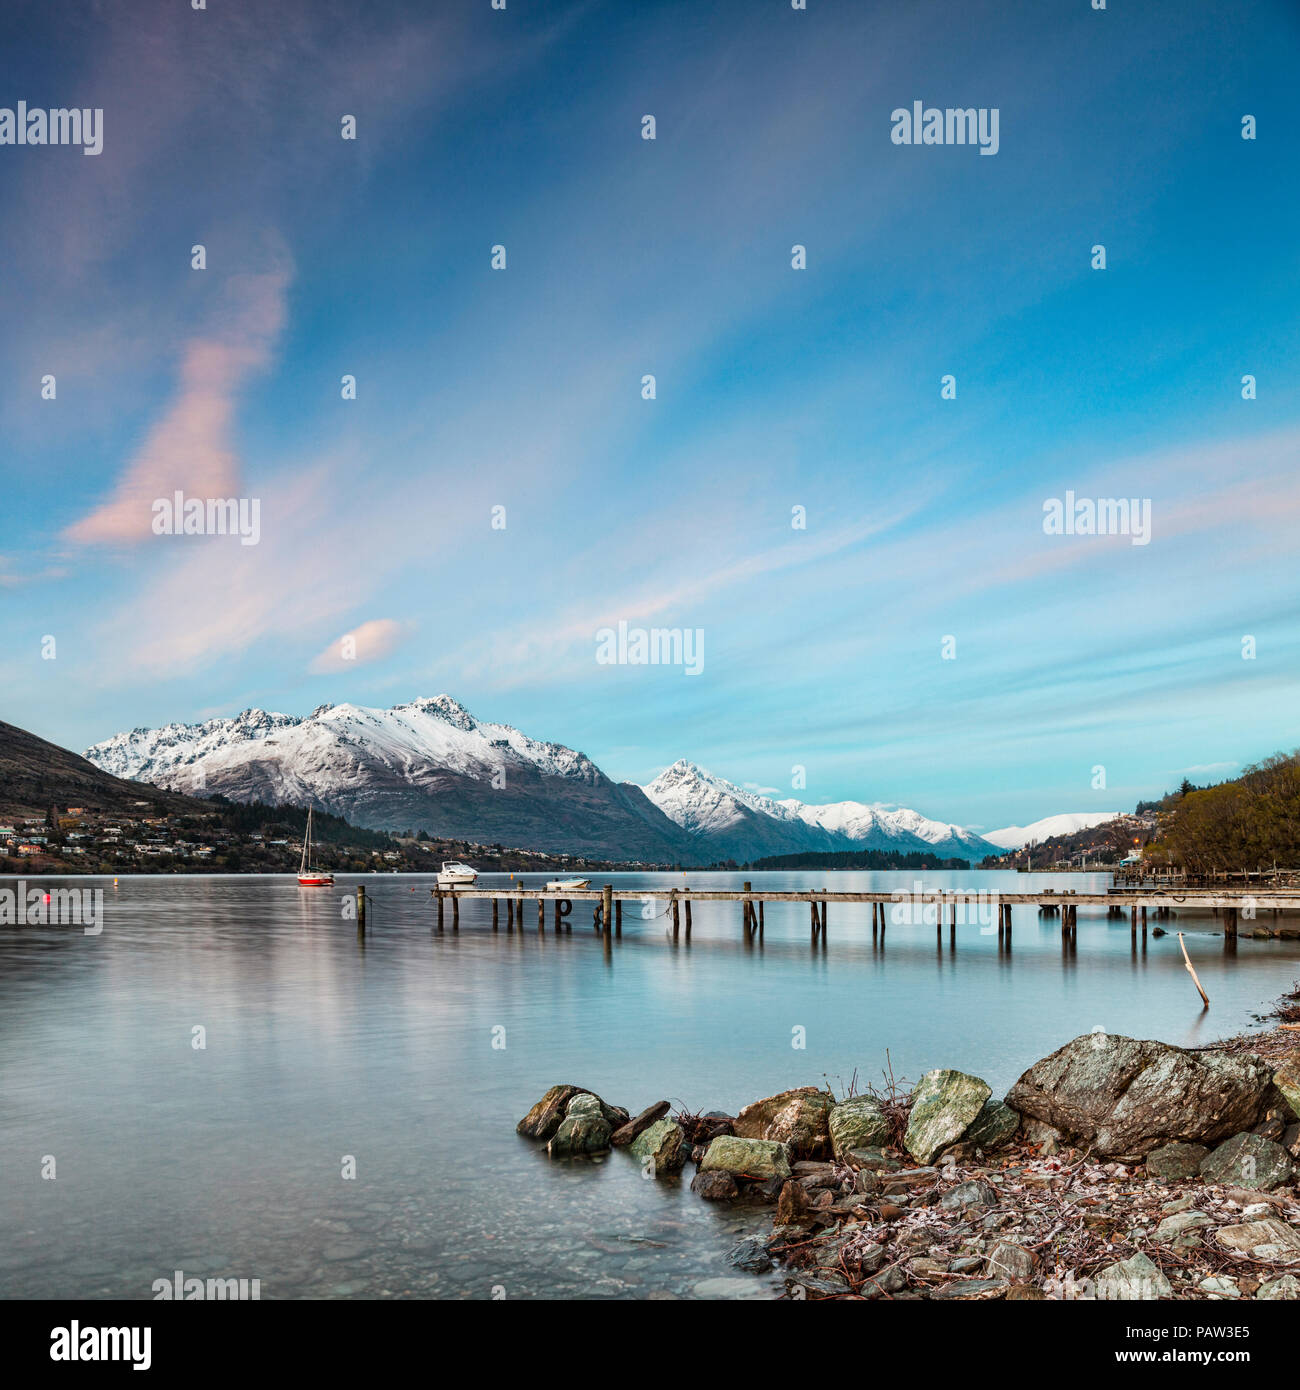 Lake Wakatipu Queenstown New Zealand - Stock Image